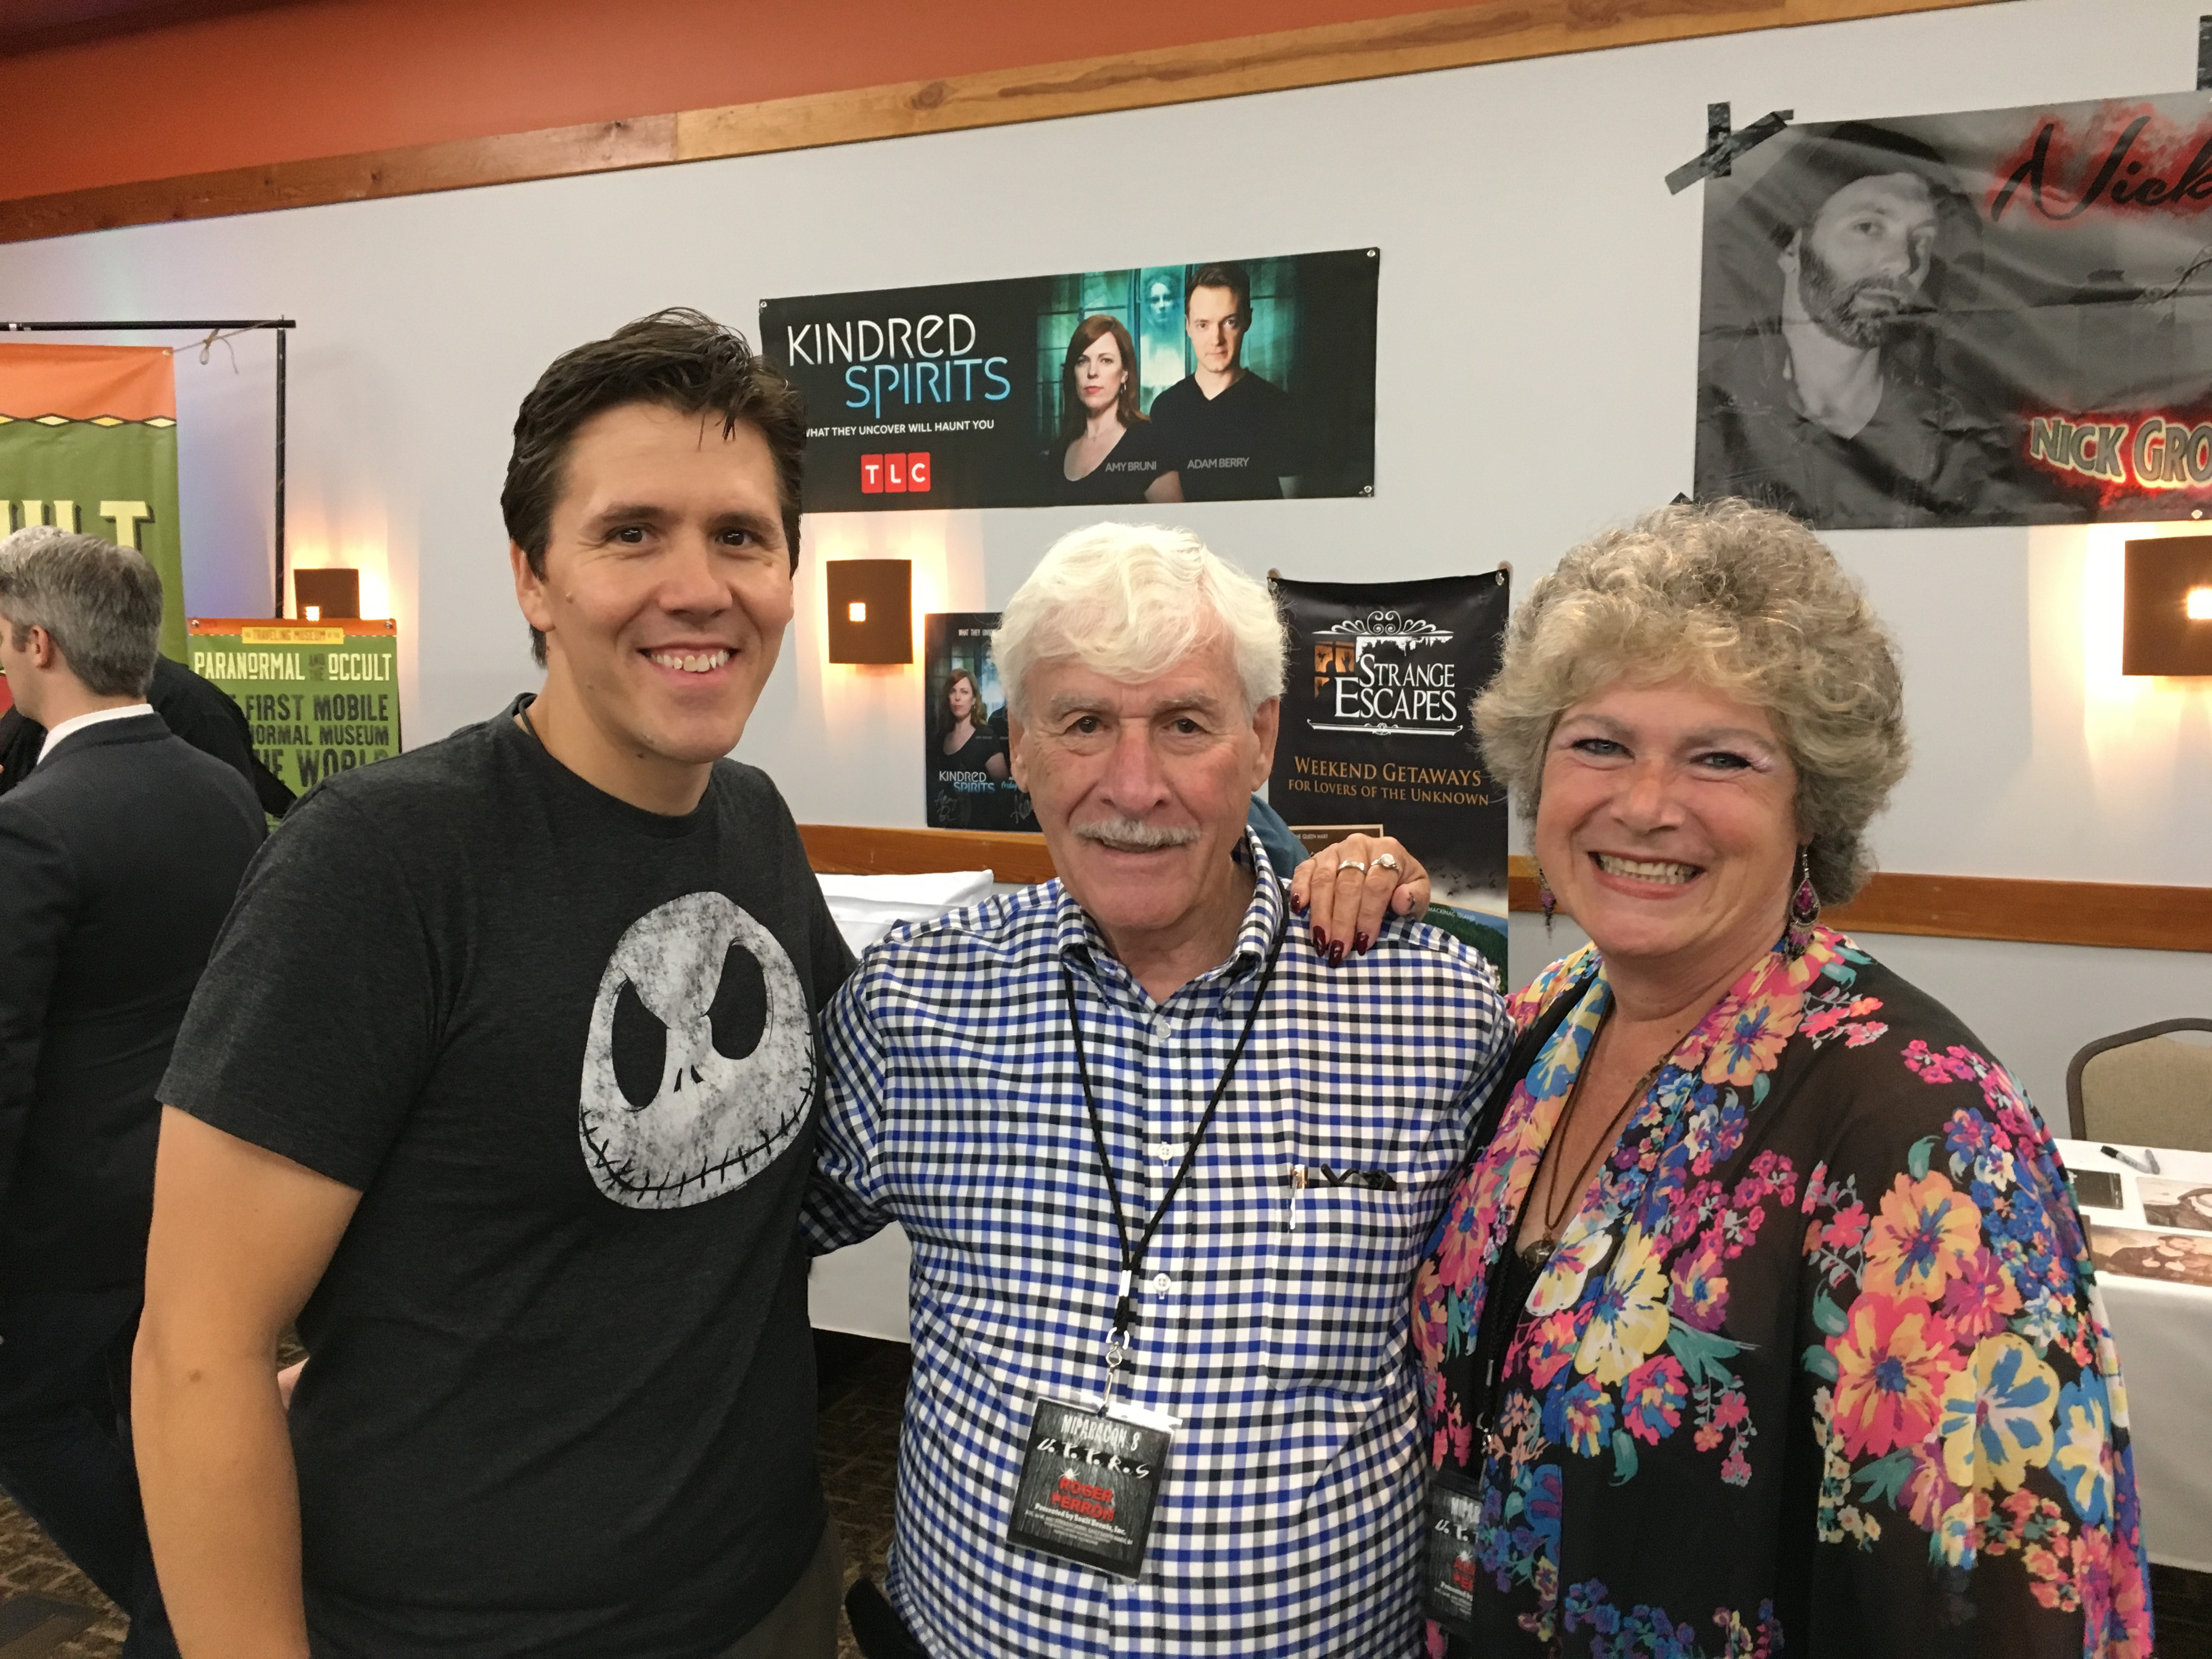 Jeff Belanger with Roger and Andrea Perron from The Conjuring